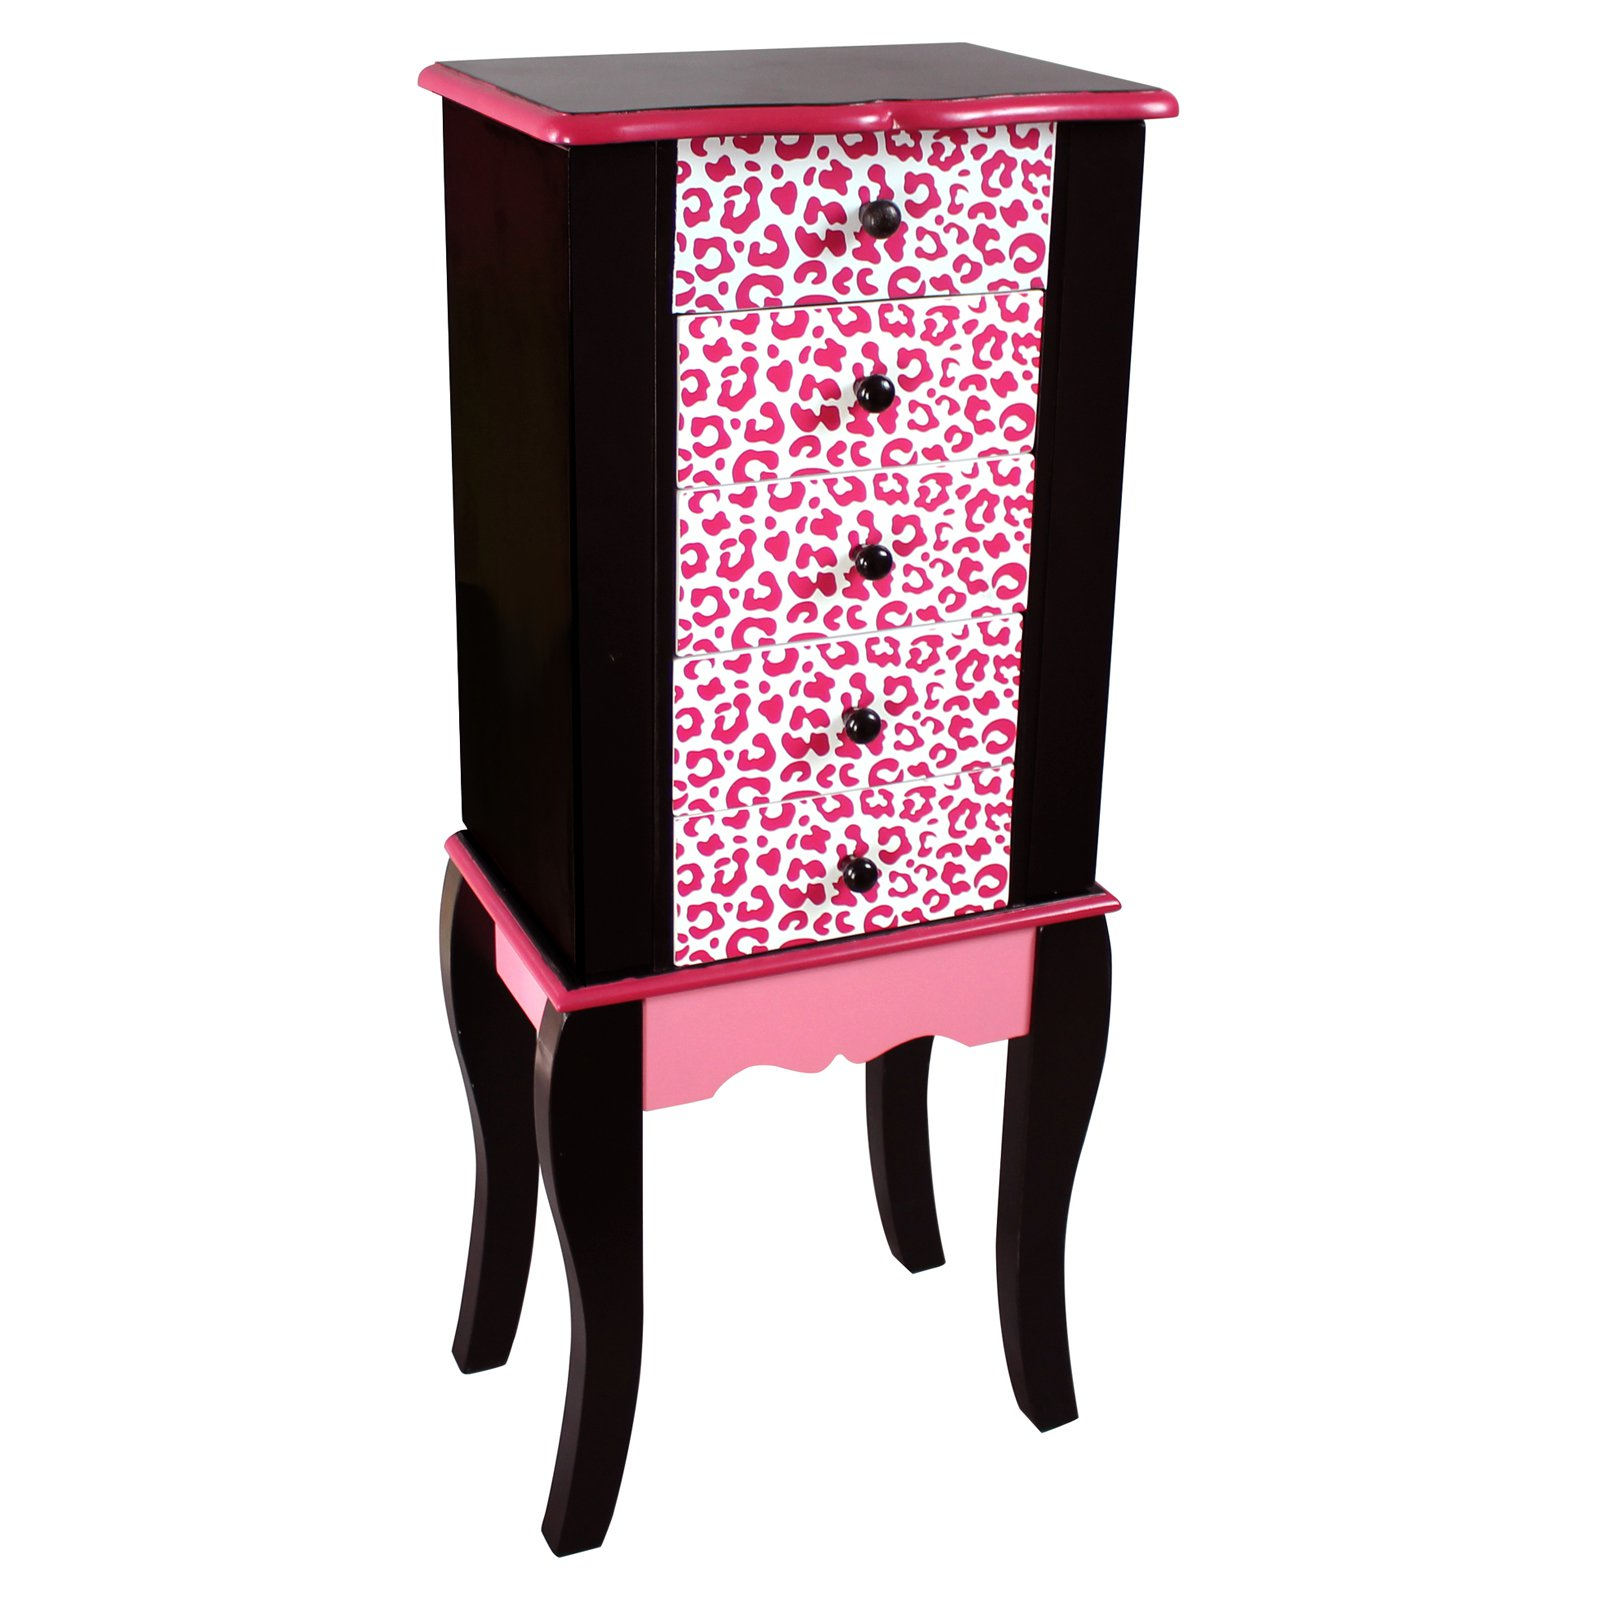 Teamson Kids Fashion Prints Jewelry Armoire Leopard (Pink   Black) by Teamson Design Corporation